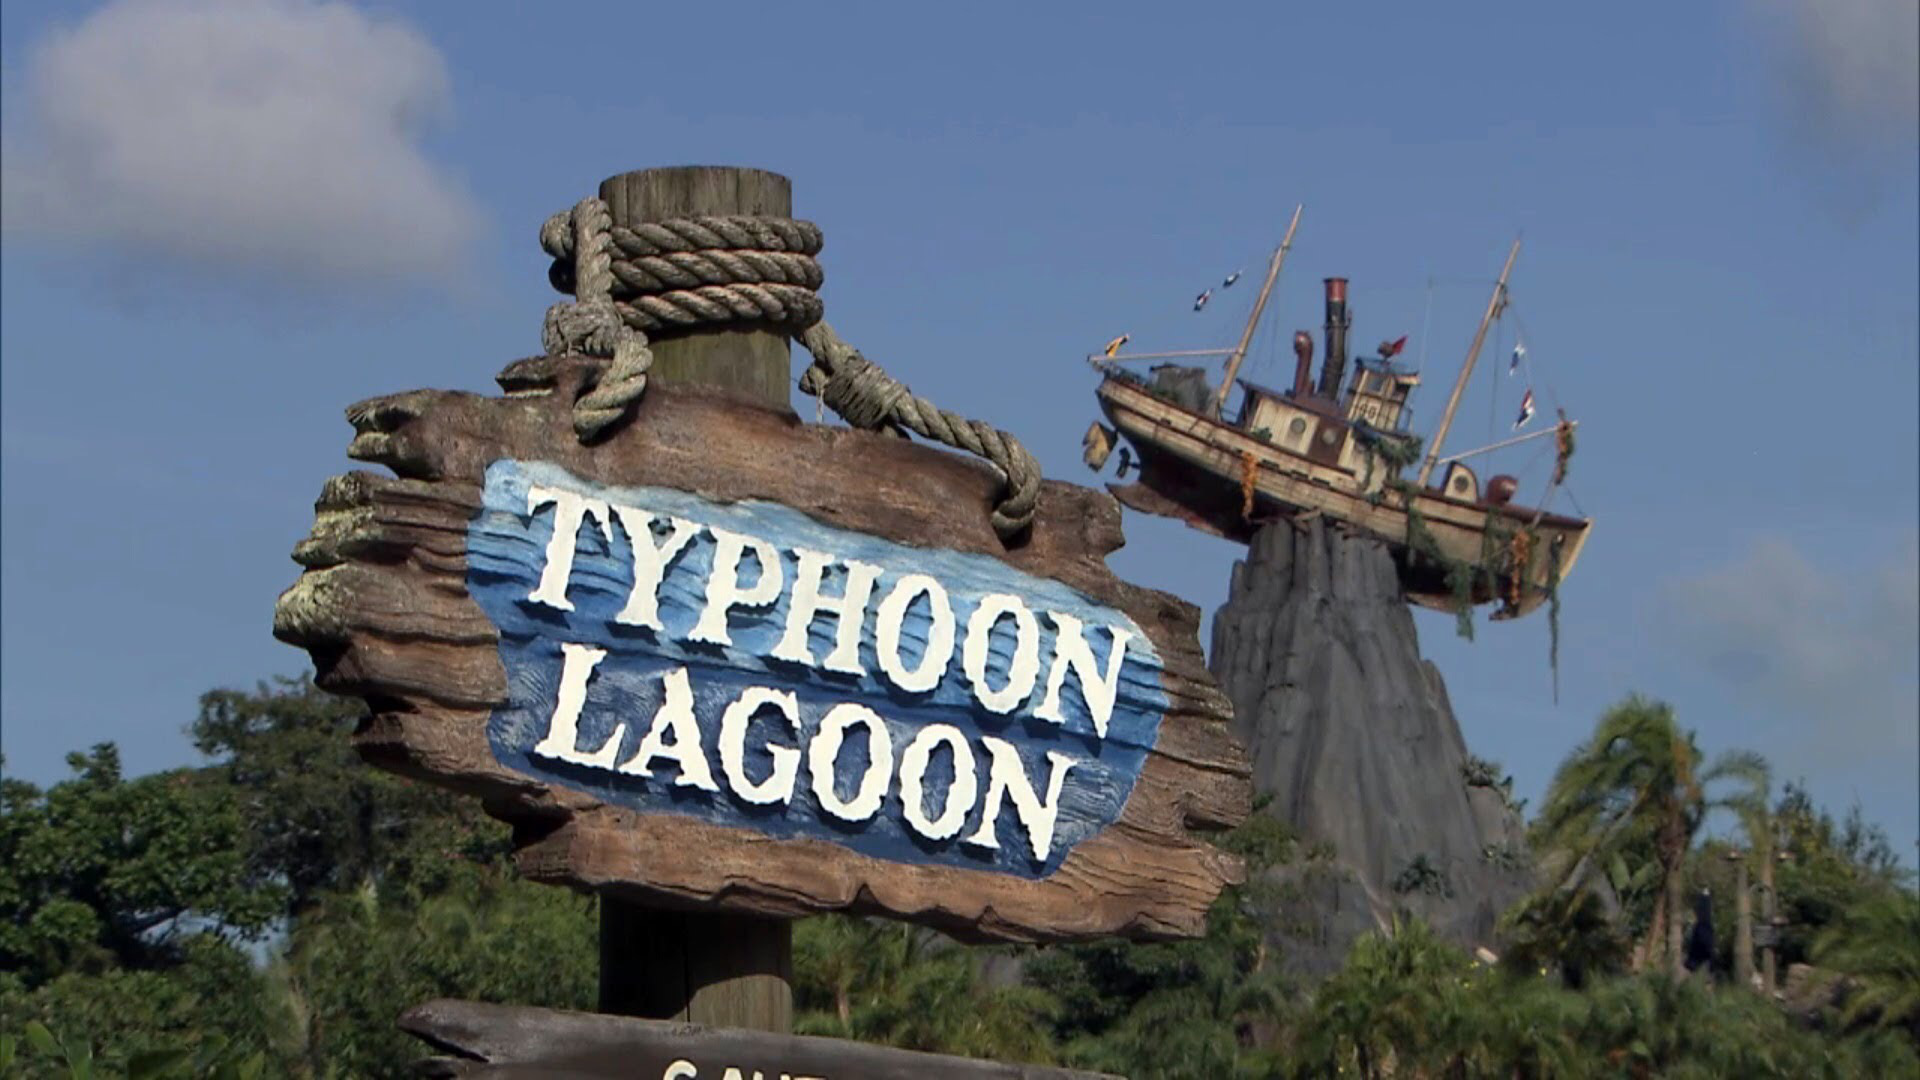 DISNEY'S TYPHOON LAGOON